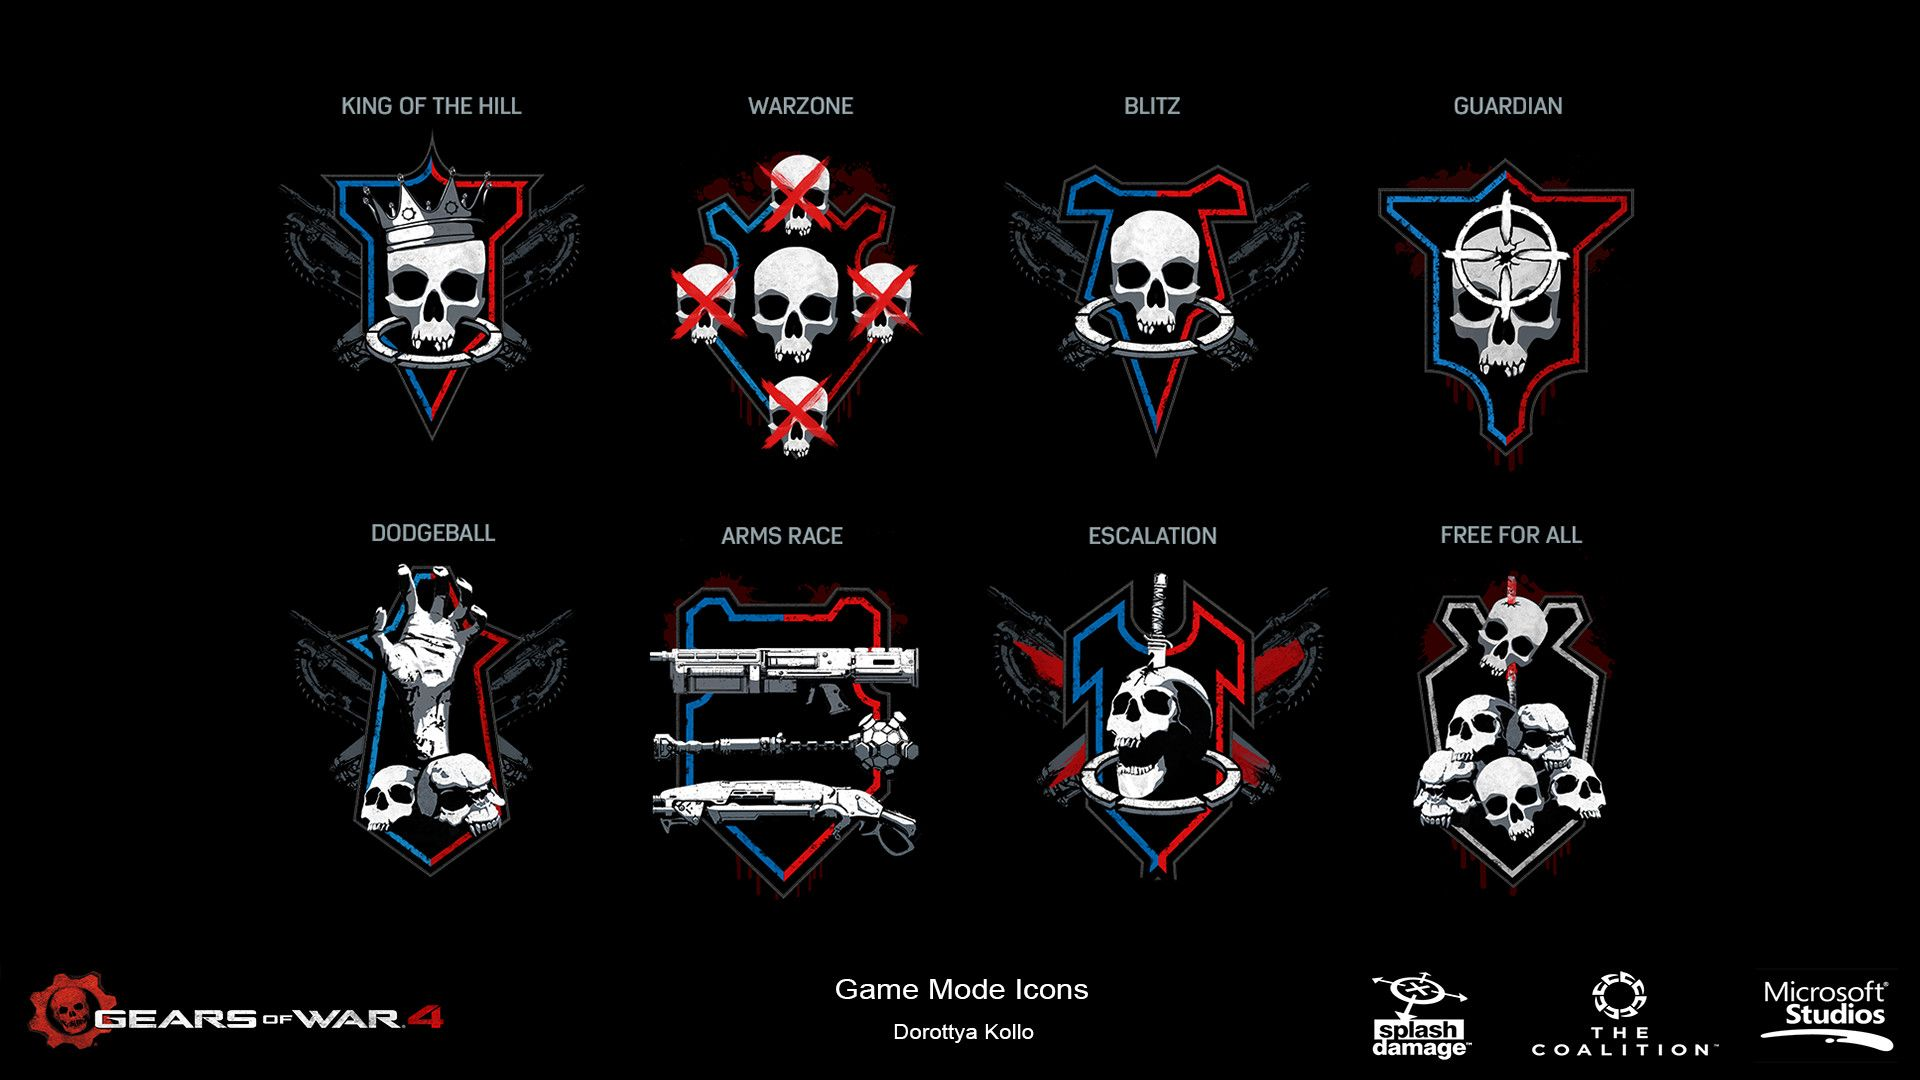 Gears Of War 4 Game Mode Icons , Dorottya